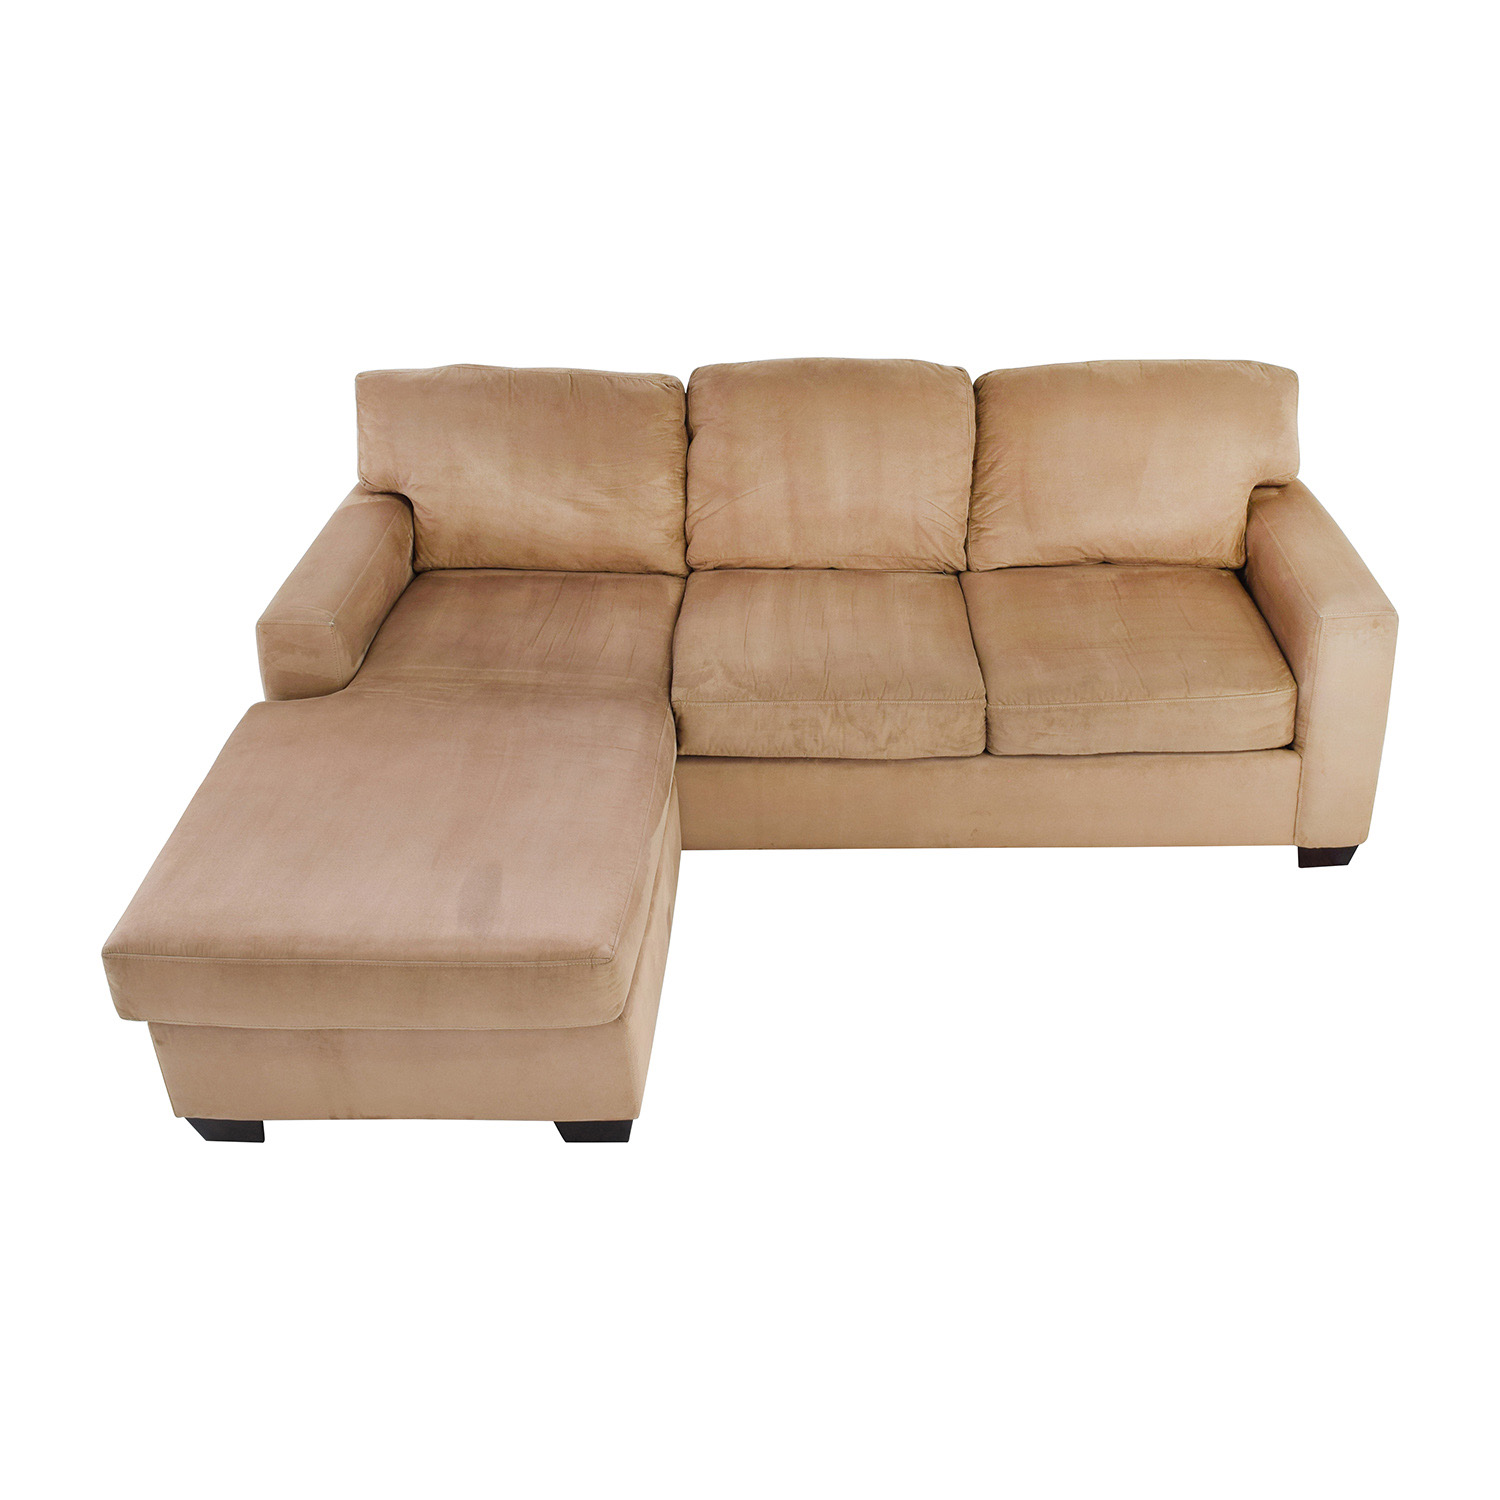 75 Off Max Home Max Home Tan Sectional Chaise Sofa Sofas